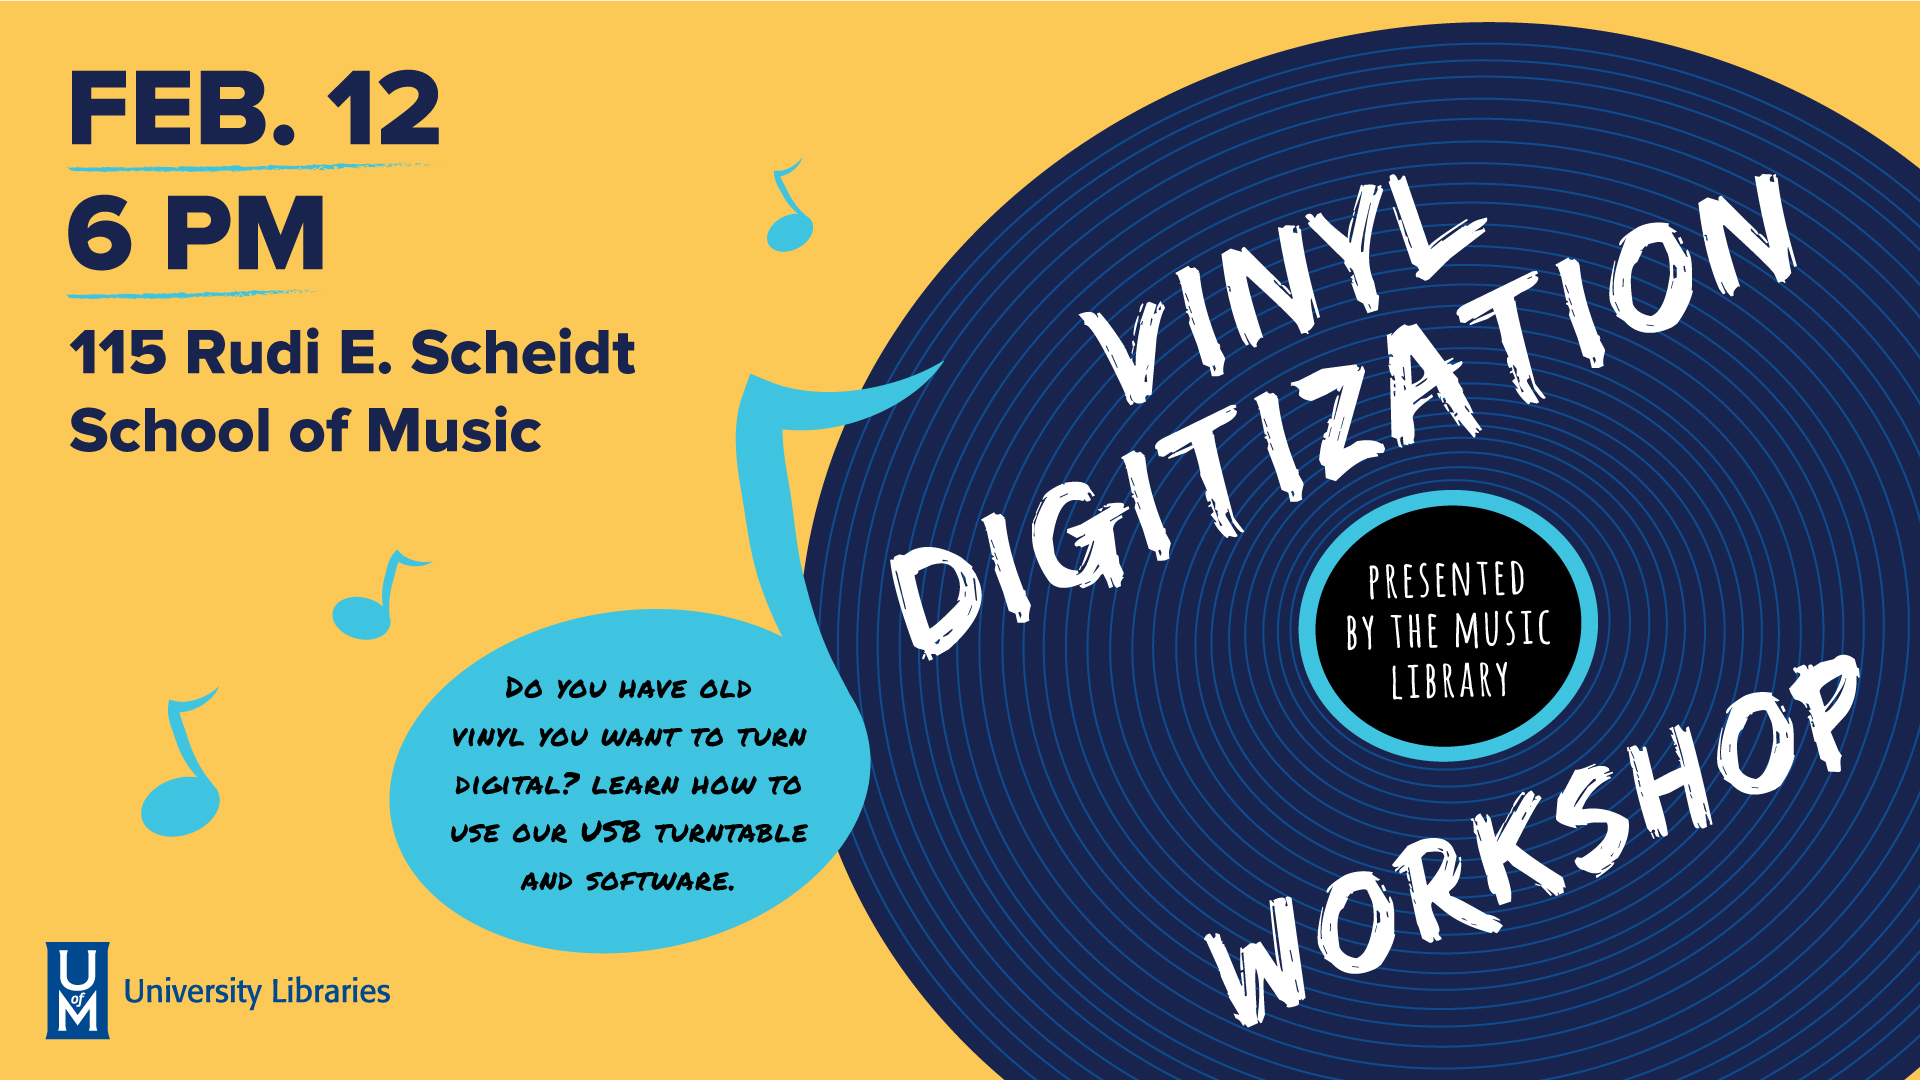 Vinyl Digitization Workshop